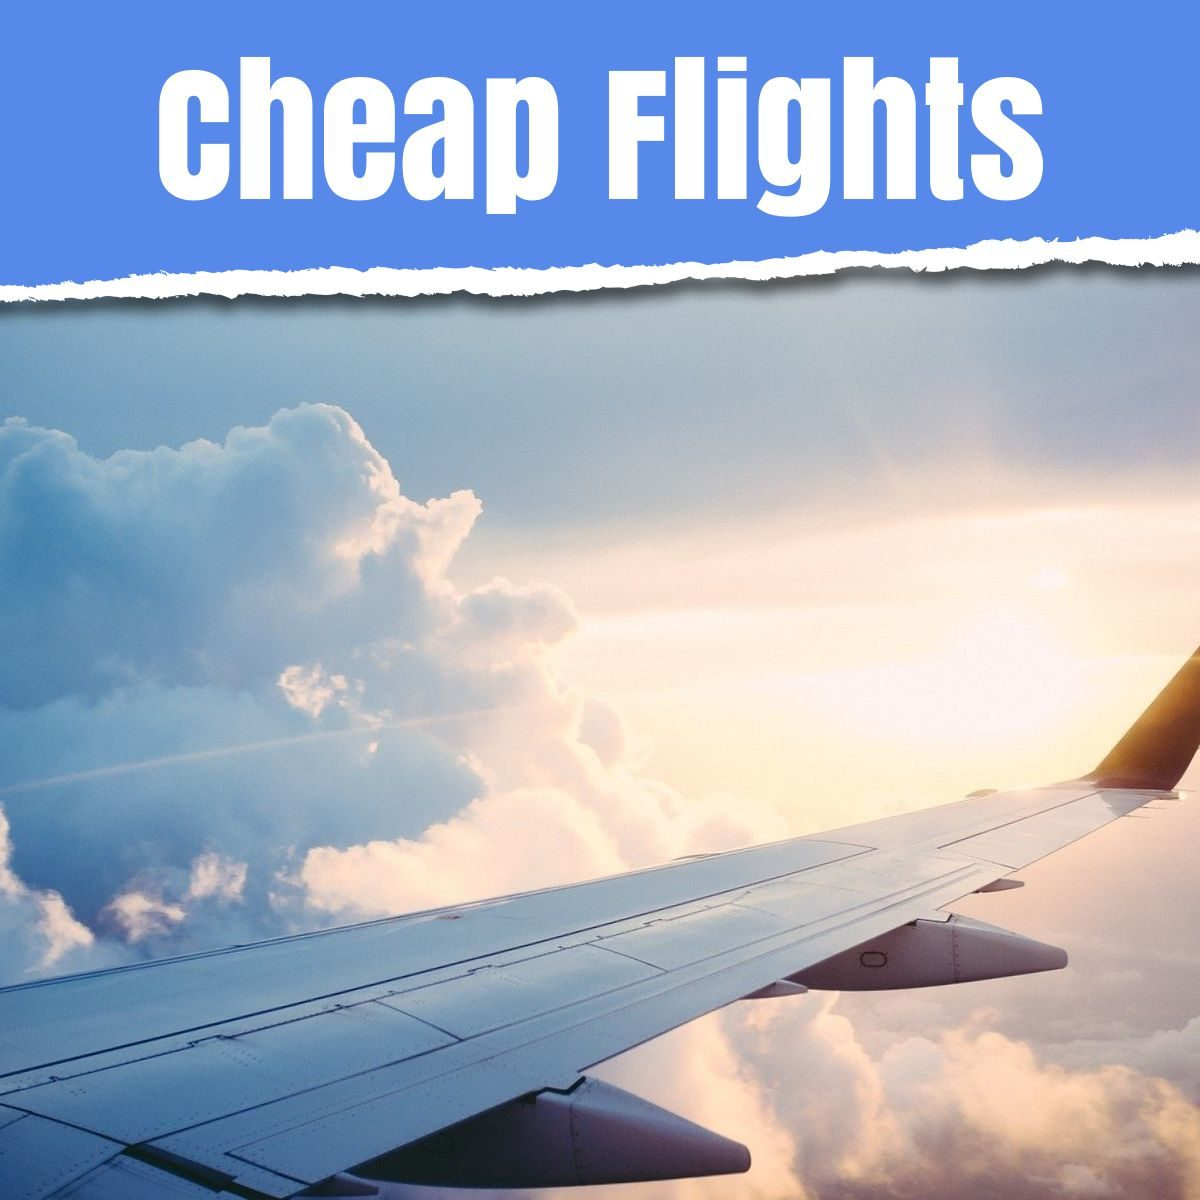 cheap flights the professional traveller media and text image